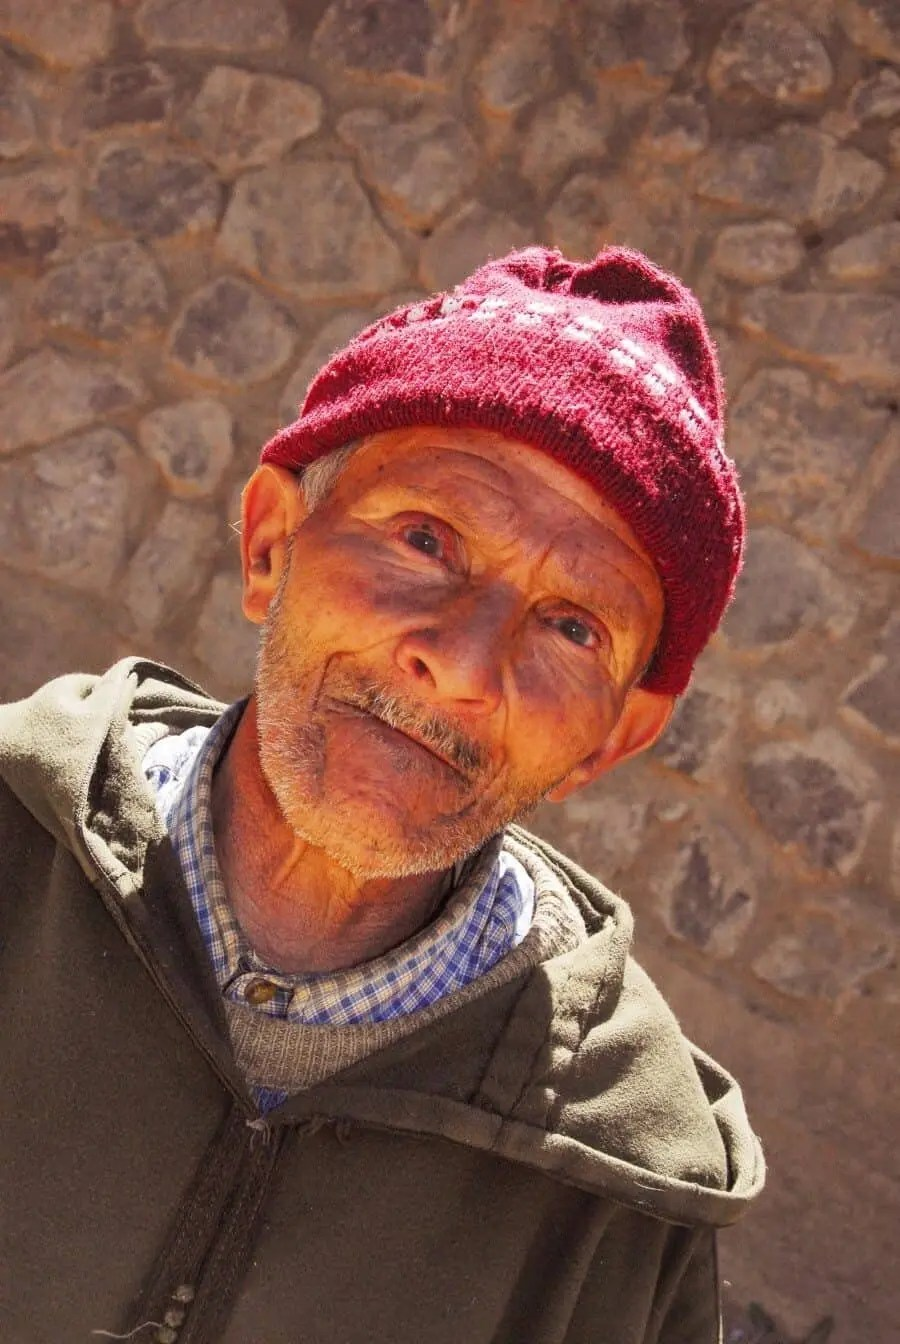 Imlil, Morocco: We were hiking in the Atlas Mountains when I stayed back to take some photos of the landscape. I soon noticed a lonely figure approaching from a path higher up and as he slowly walked towards me he stopped to stare and I showed him the photo I had taken. He put his hand out then stood and I assumed he wanted his portrait taken...I gave him an Australian dollar which he studied and then showed him his portrait which put a little smile on his face. Then he continued his walk down the mountain and I took a deep breath thankful for such an interaction.